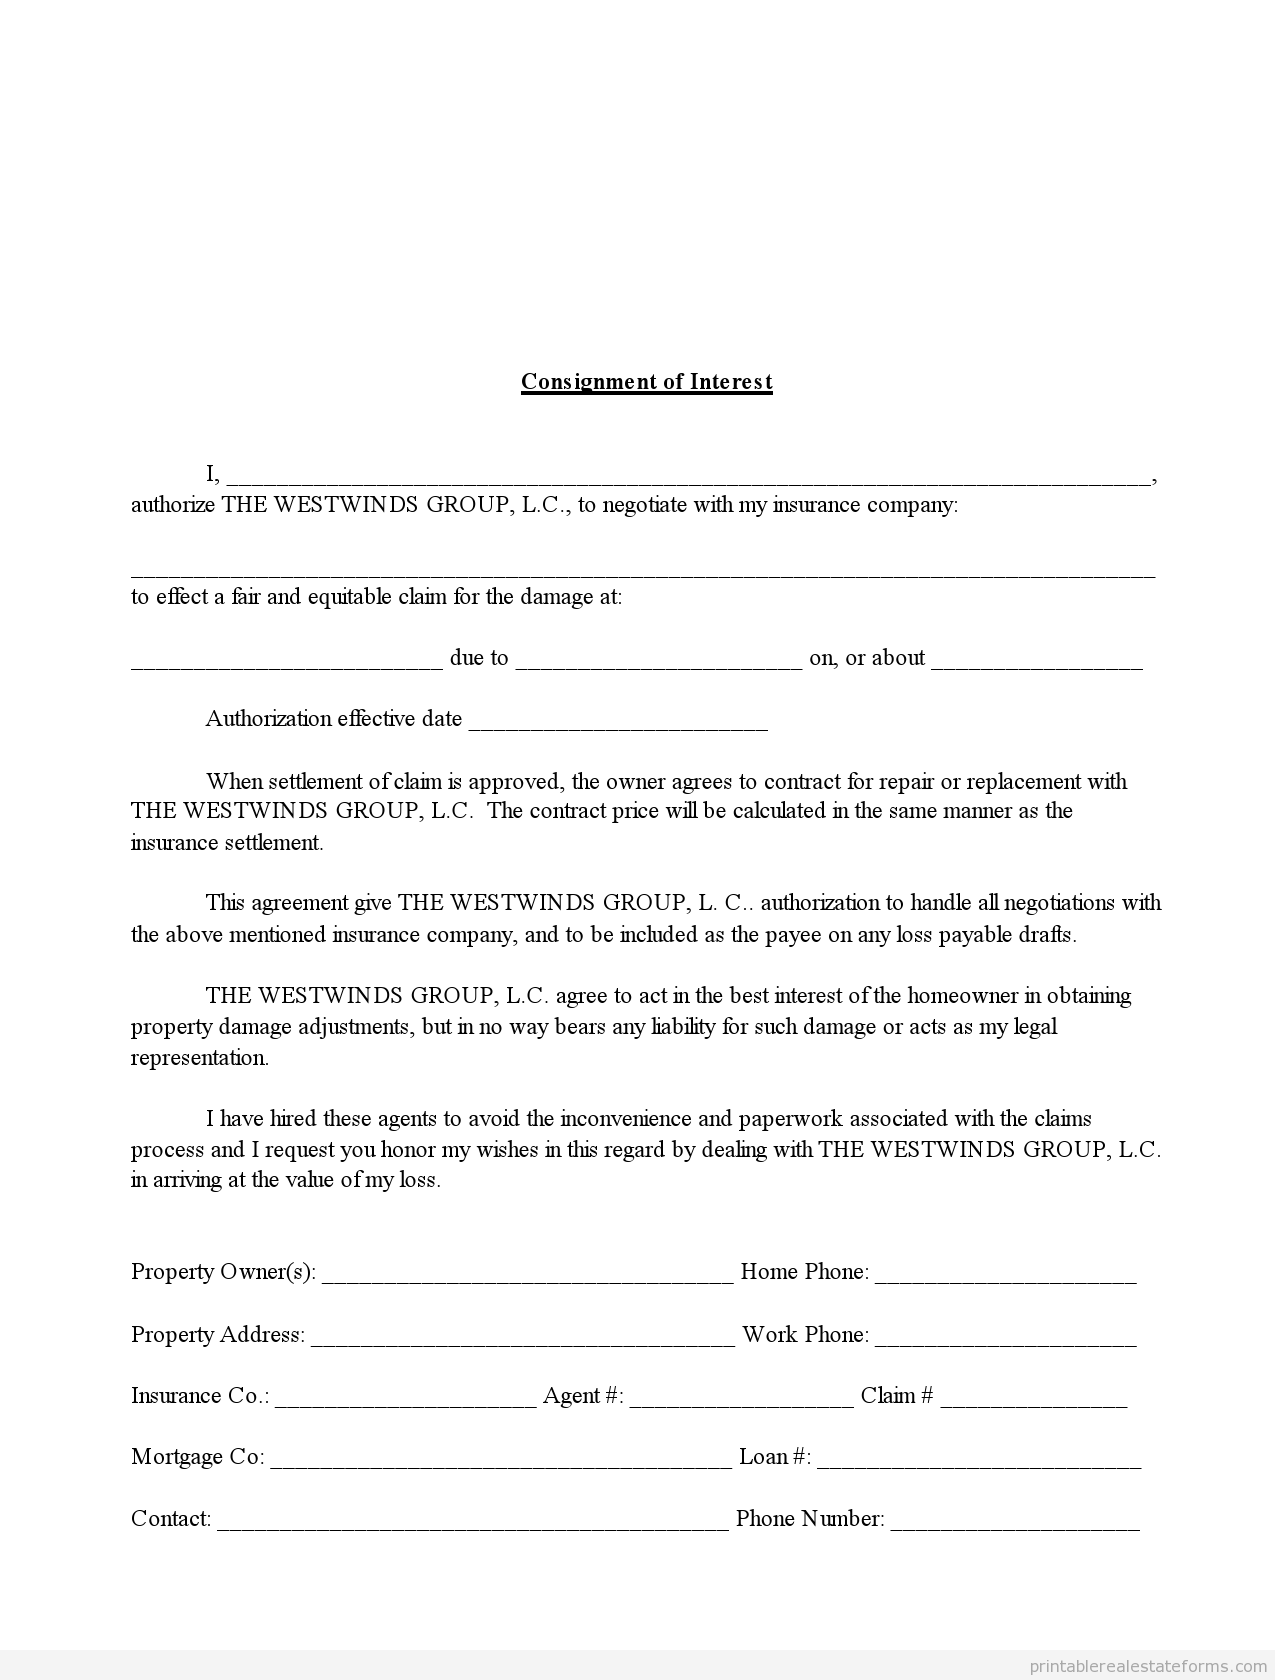 Consignment Of Interest In Insurance Claim Templates